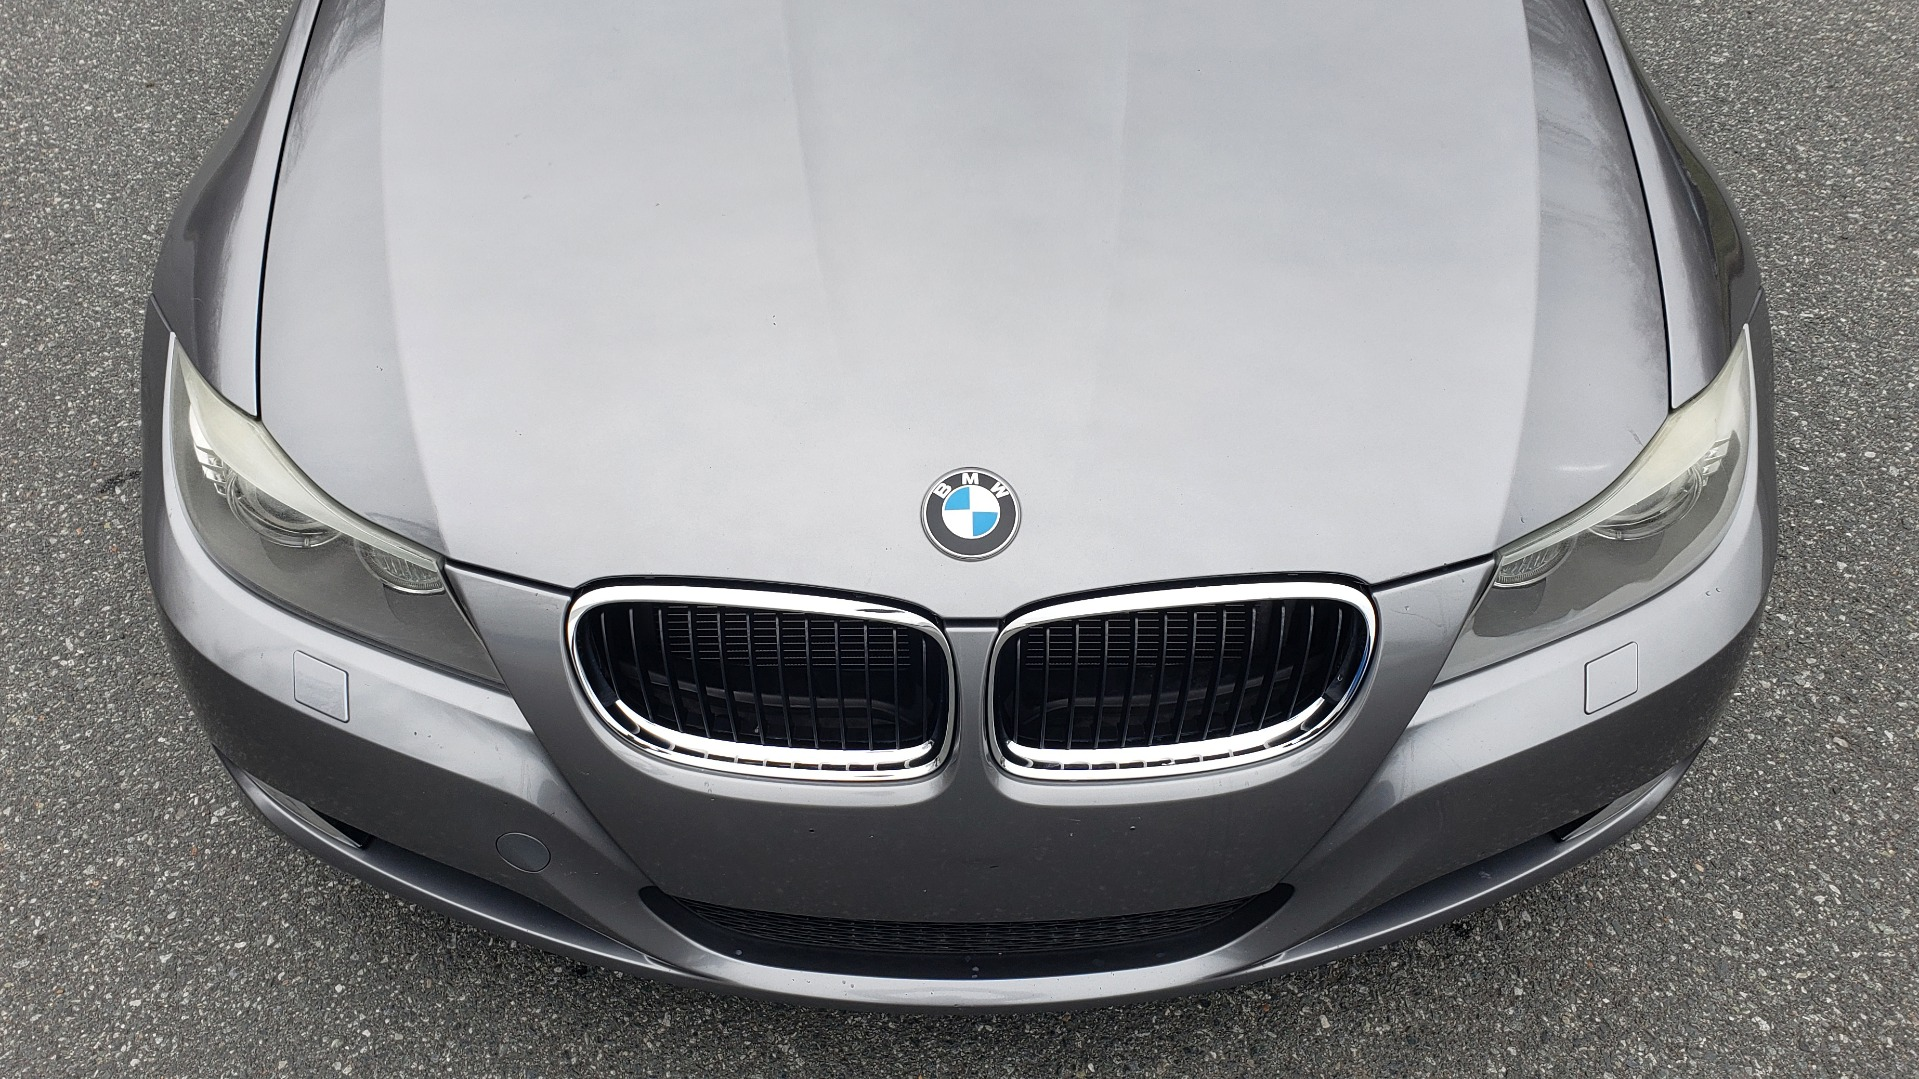 Used 2011 BMW 3 SERIES 328IXDRIVE PREMIUM / NAV / SUNROOF / HEATED SEATS for sale Sold at Formula Imports in Charlotte NC 28227 20